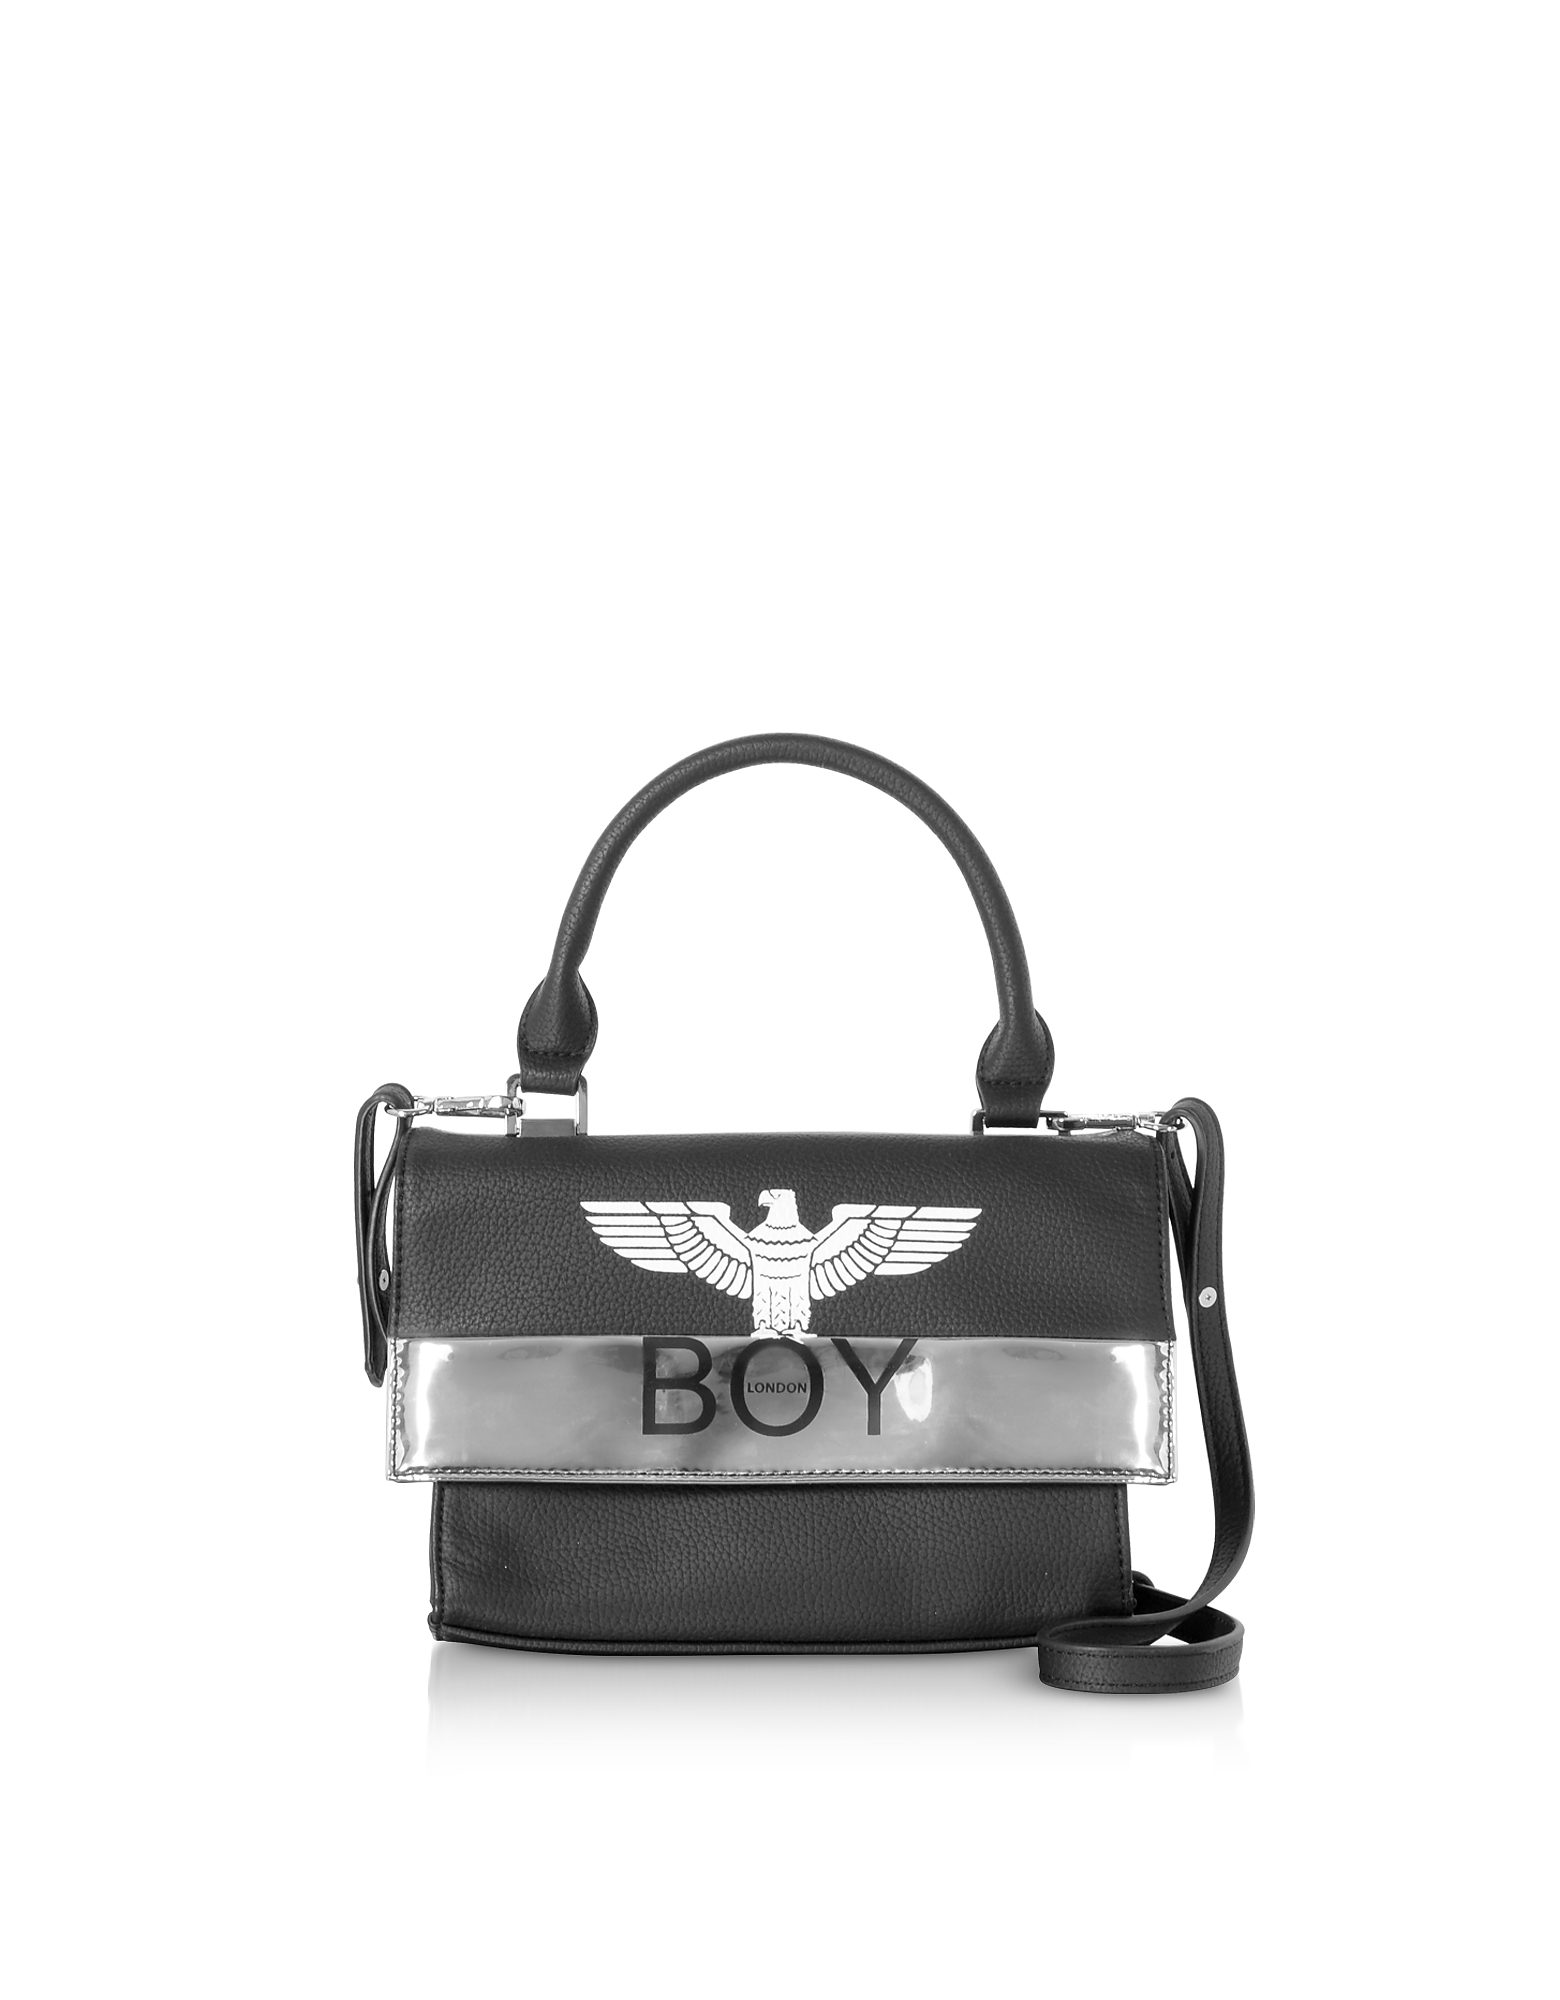 BOY London Designer Handbags, Black & Silver Synthetic Leather Top Handle Bag